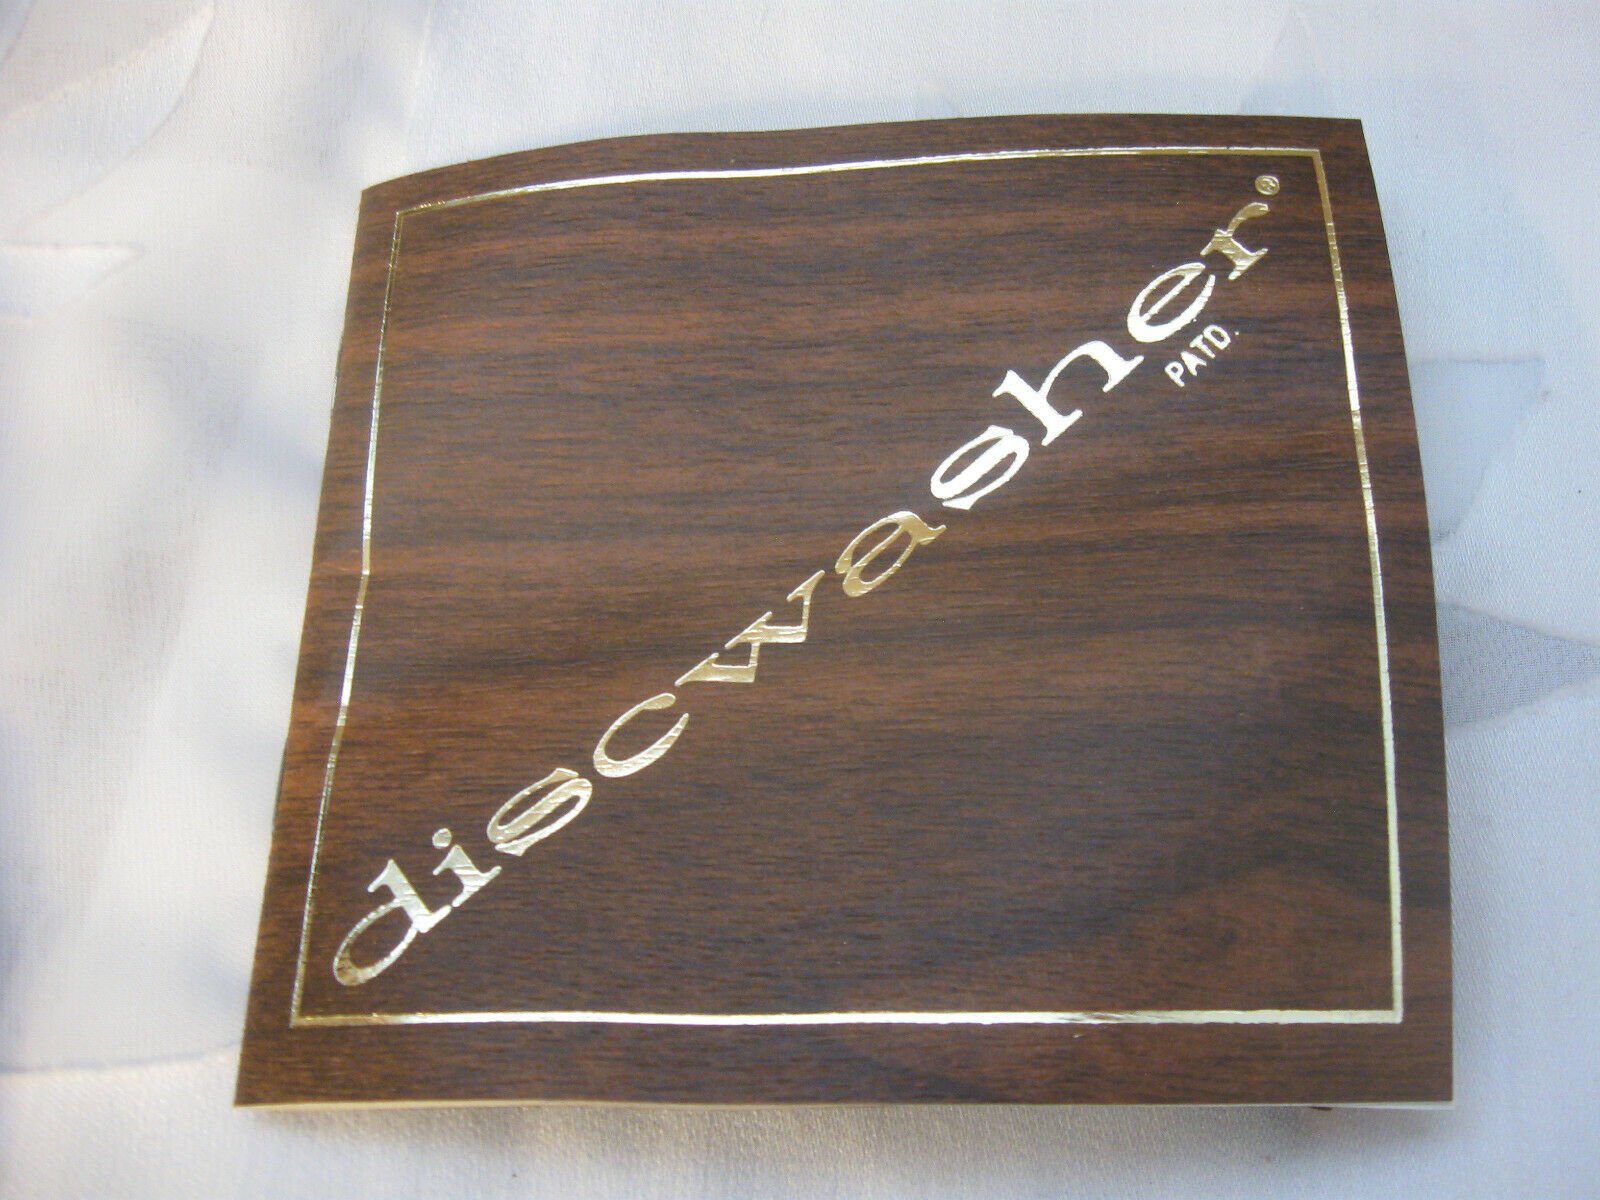 Discwasher Vinyl Album Cleaning System D4 Solution Complete In Box Vintage